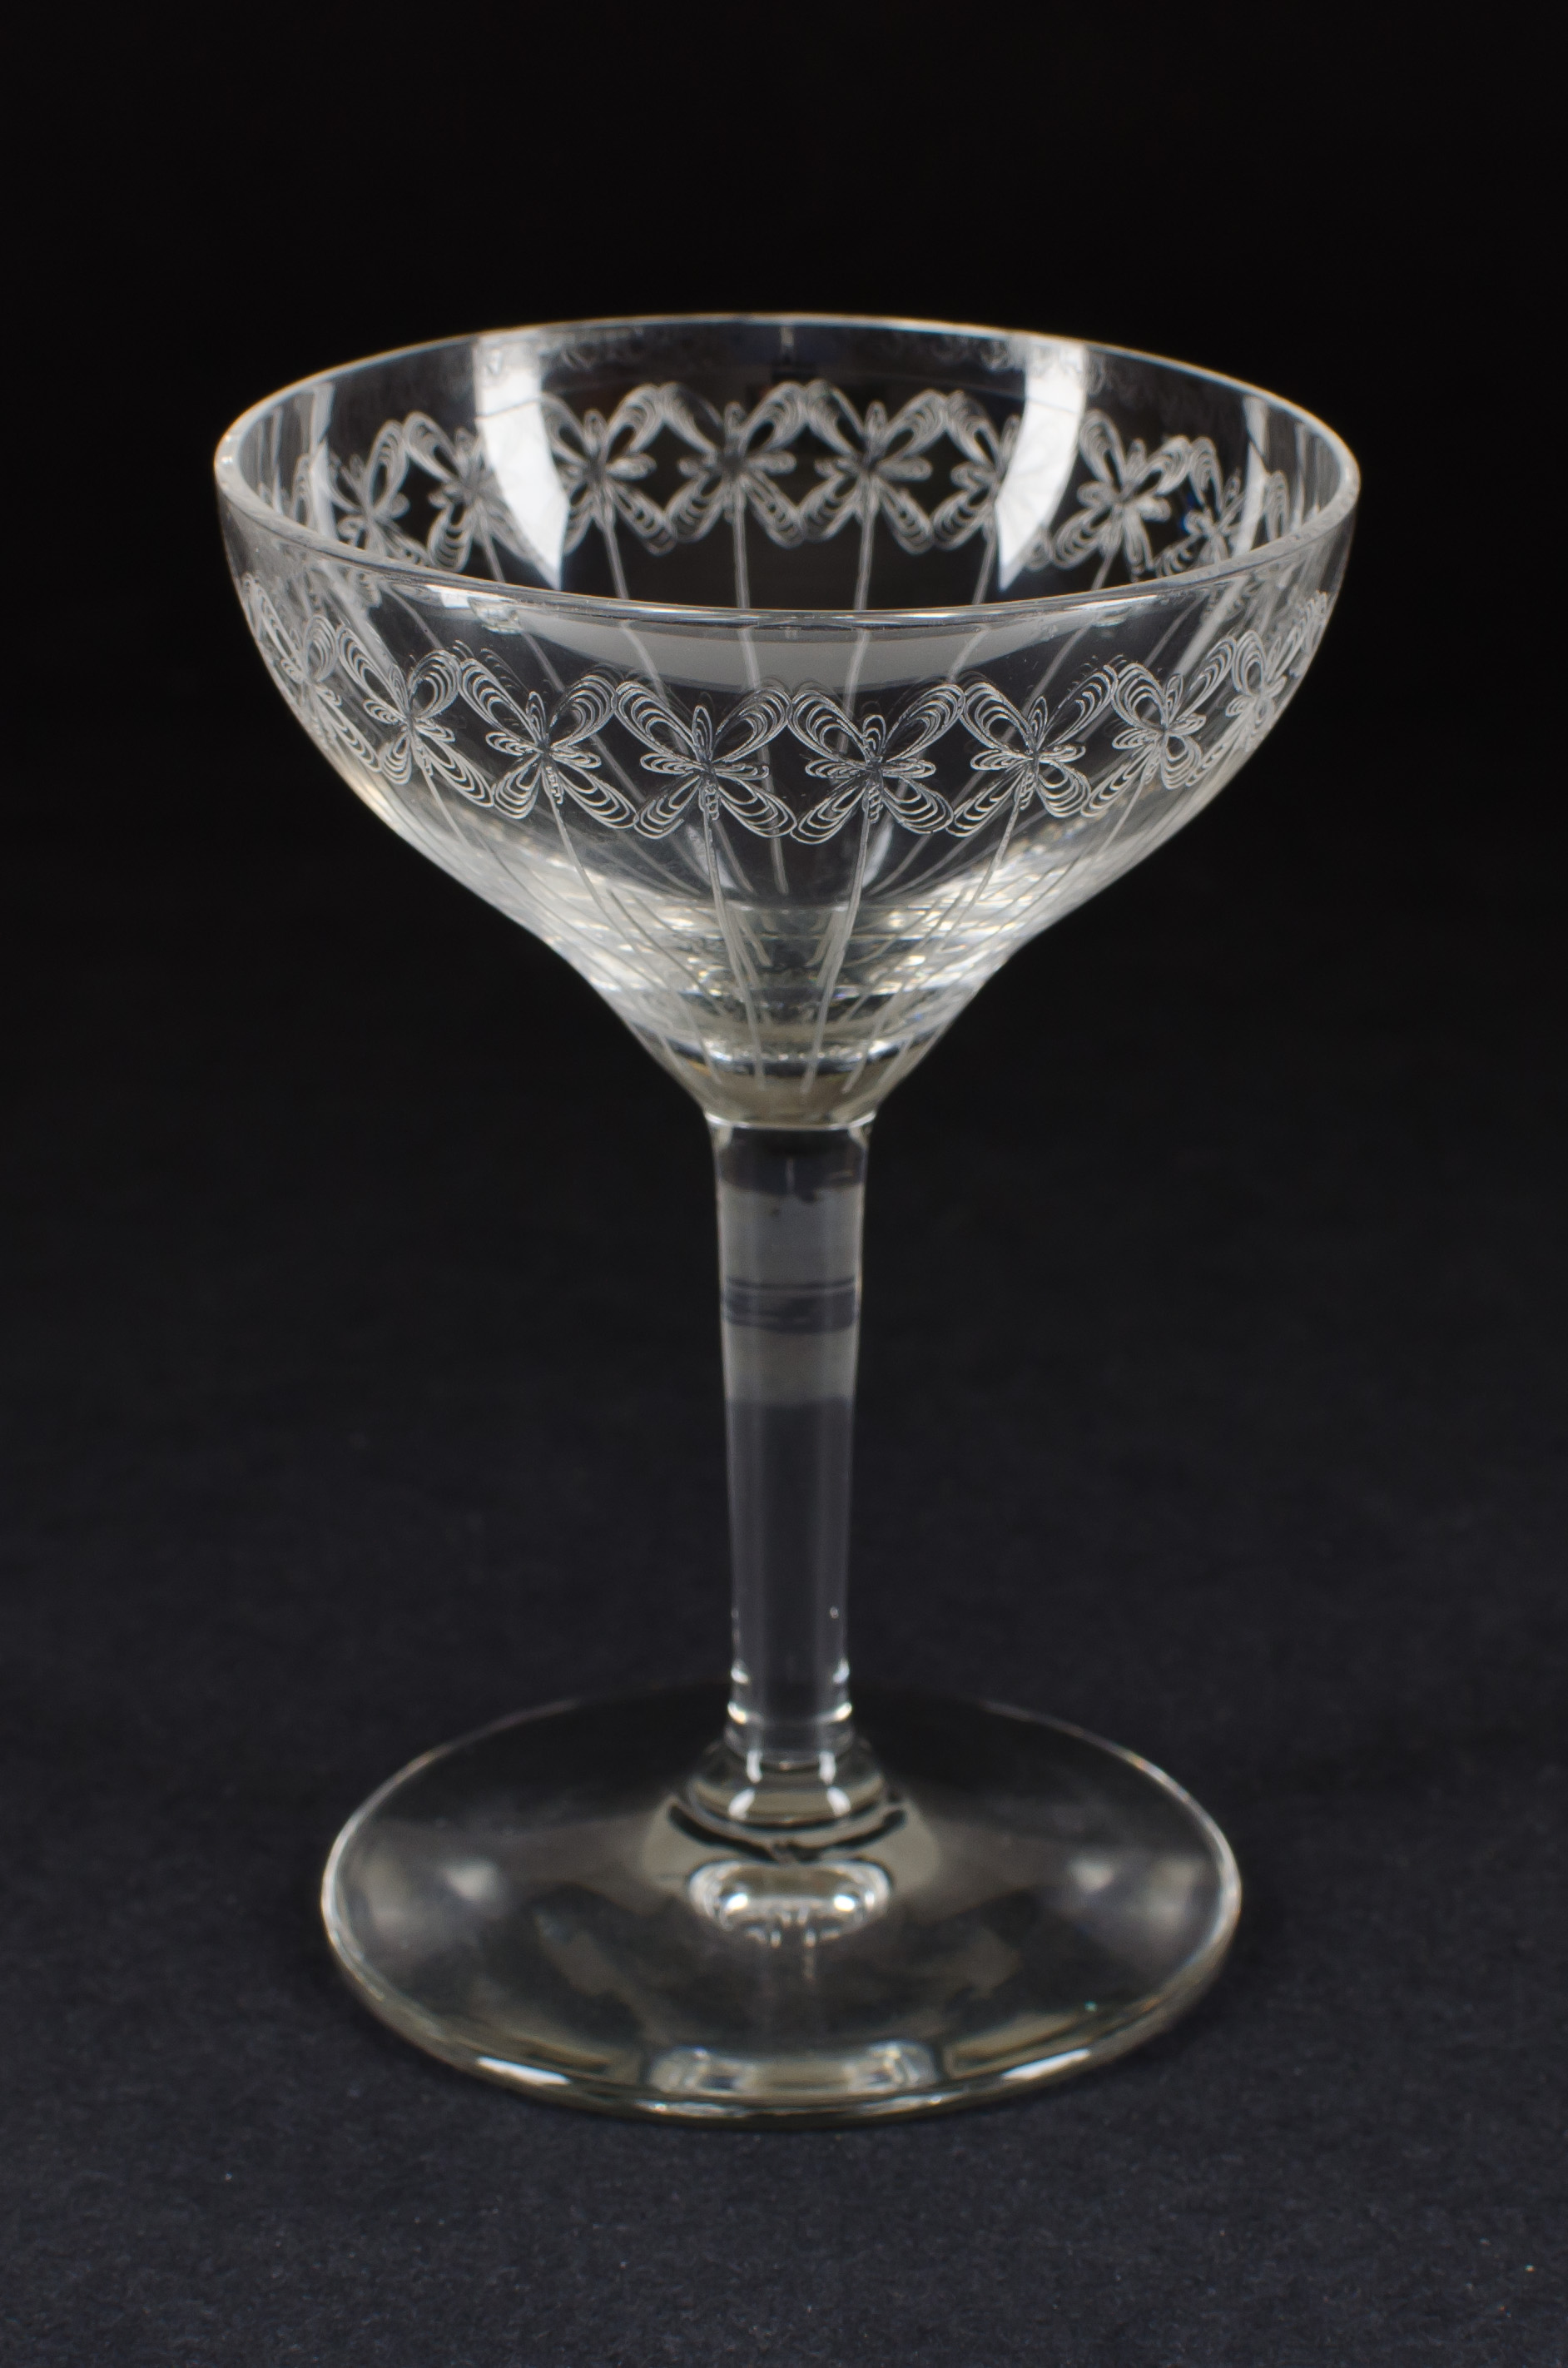 ccba901f4d3 Antique Cocktail Glasses - Bitterroot Public Library